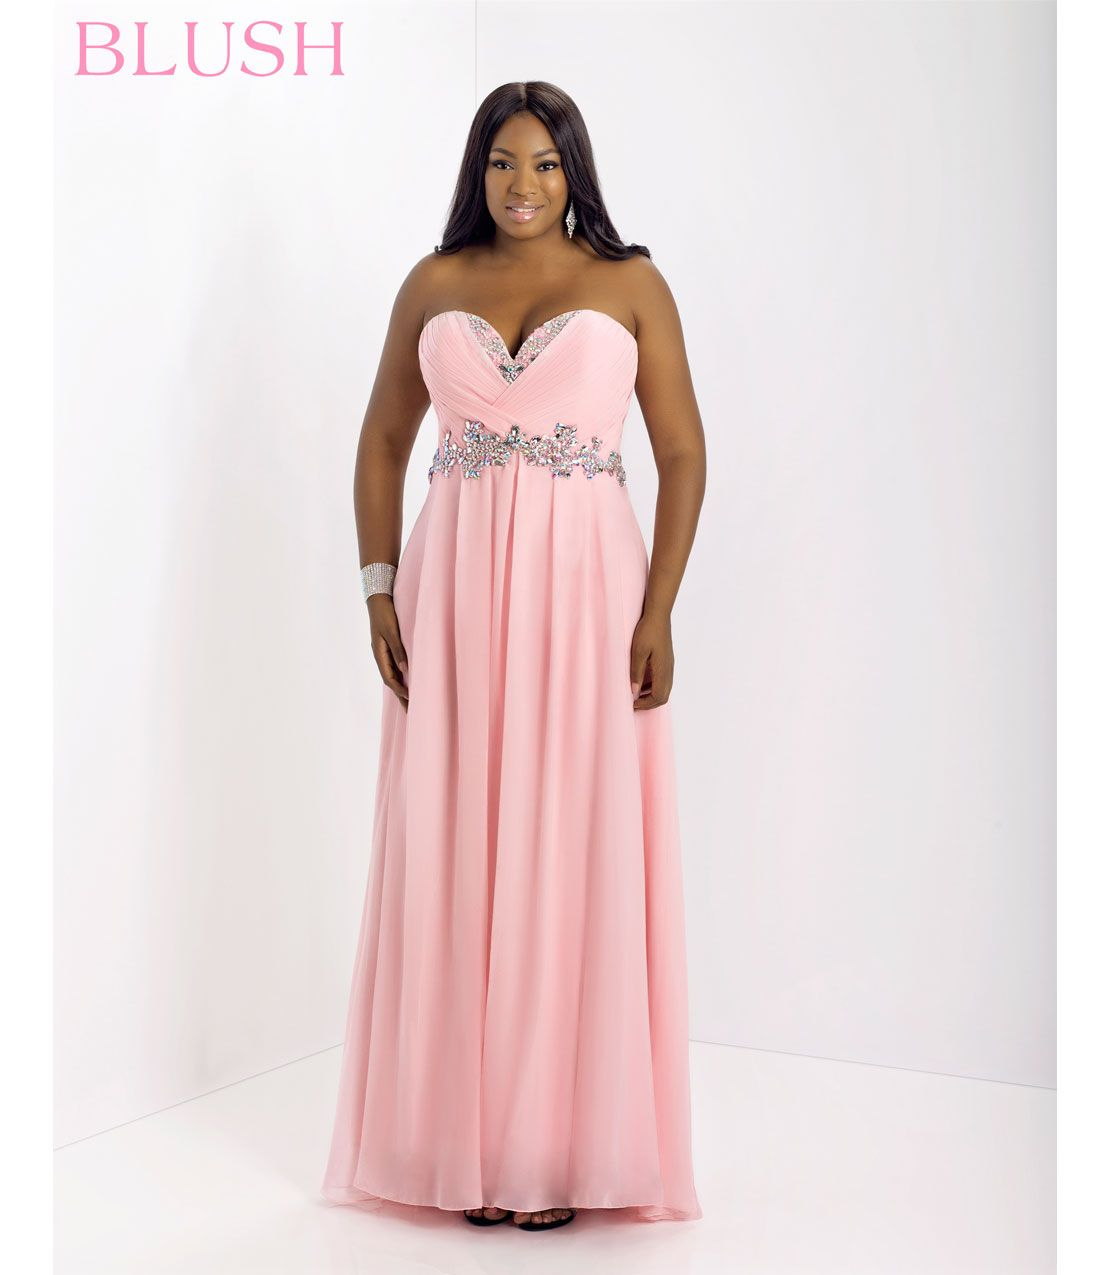 Ruby rox plus size prom dress one shoulder embellished maxi